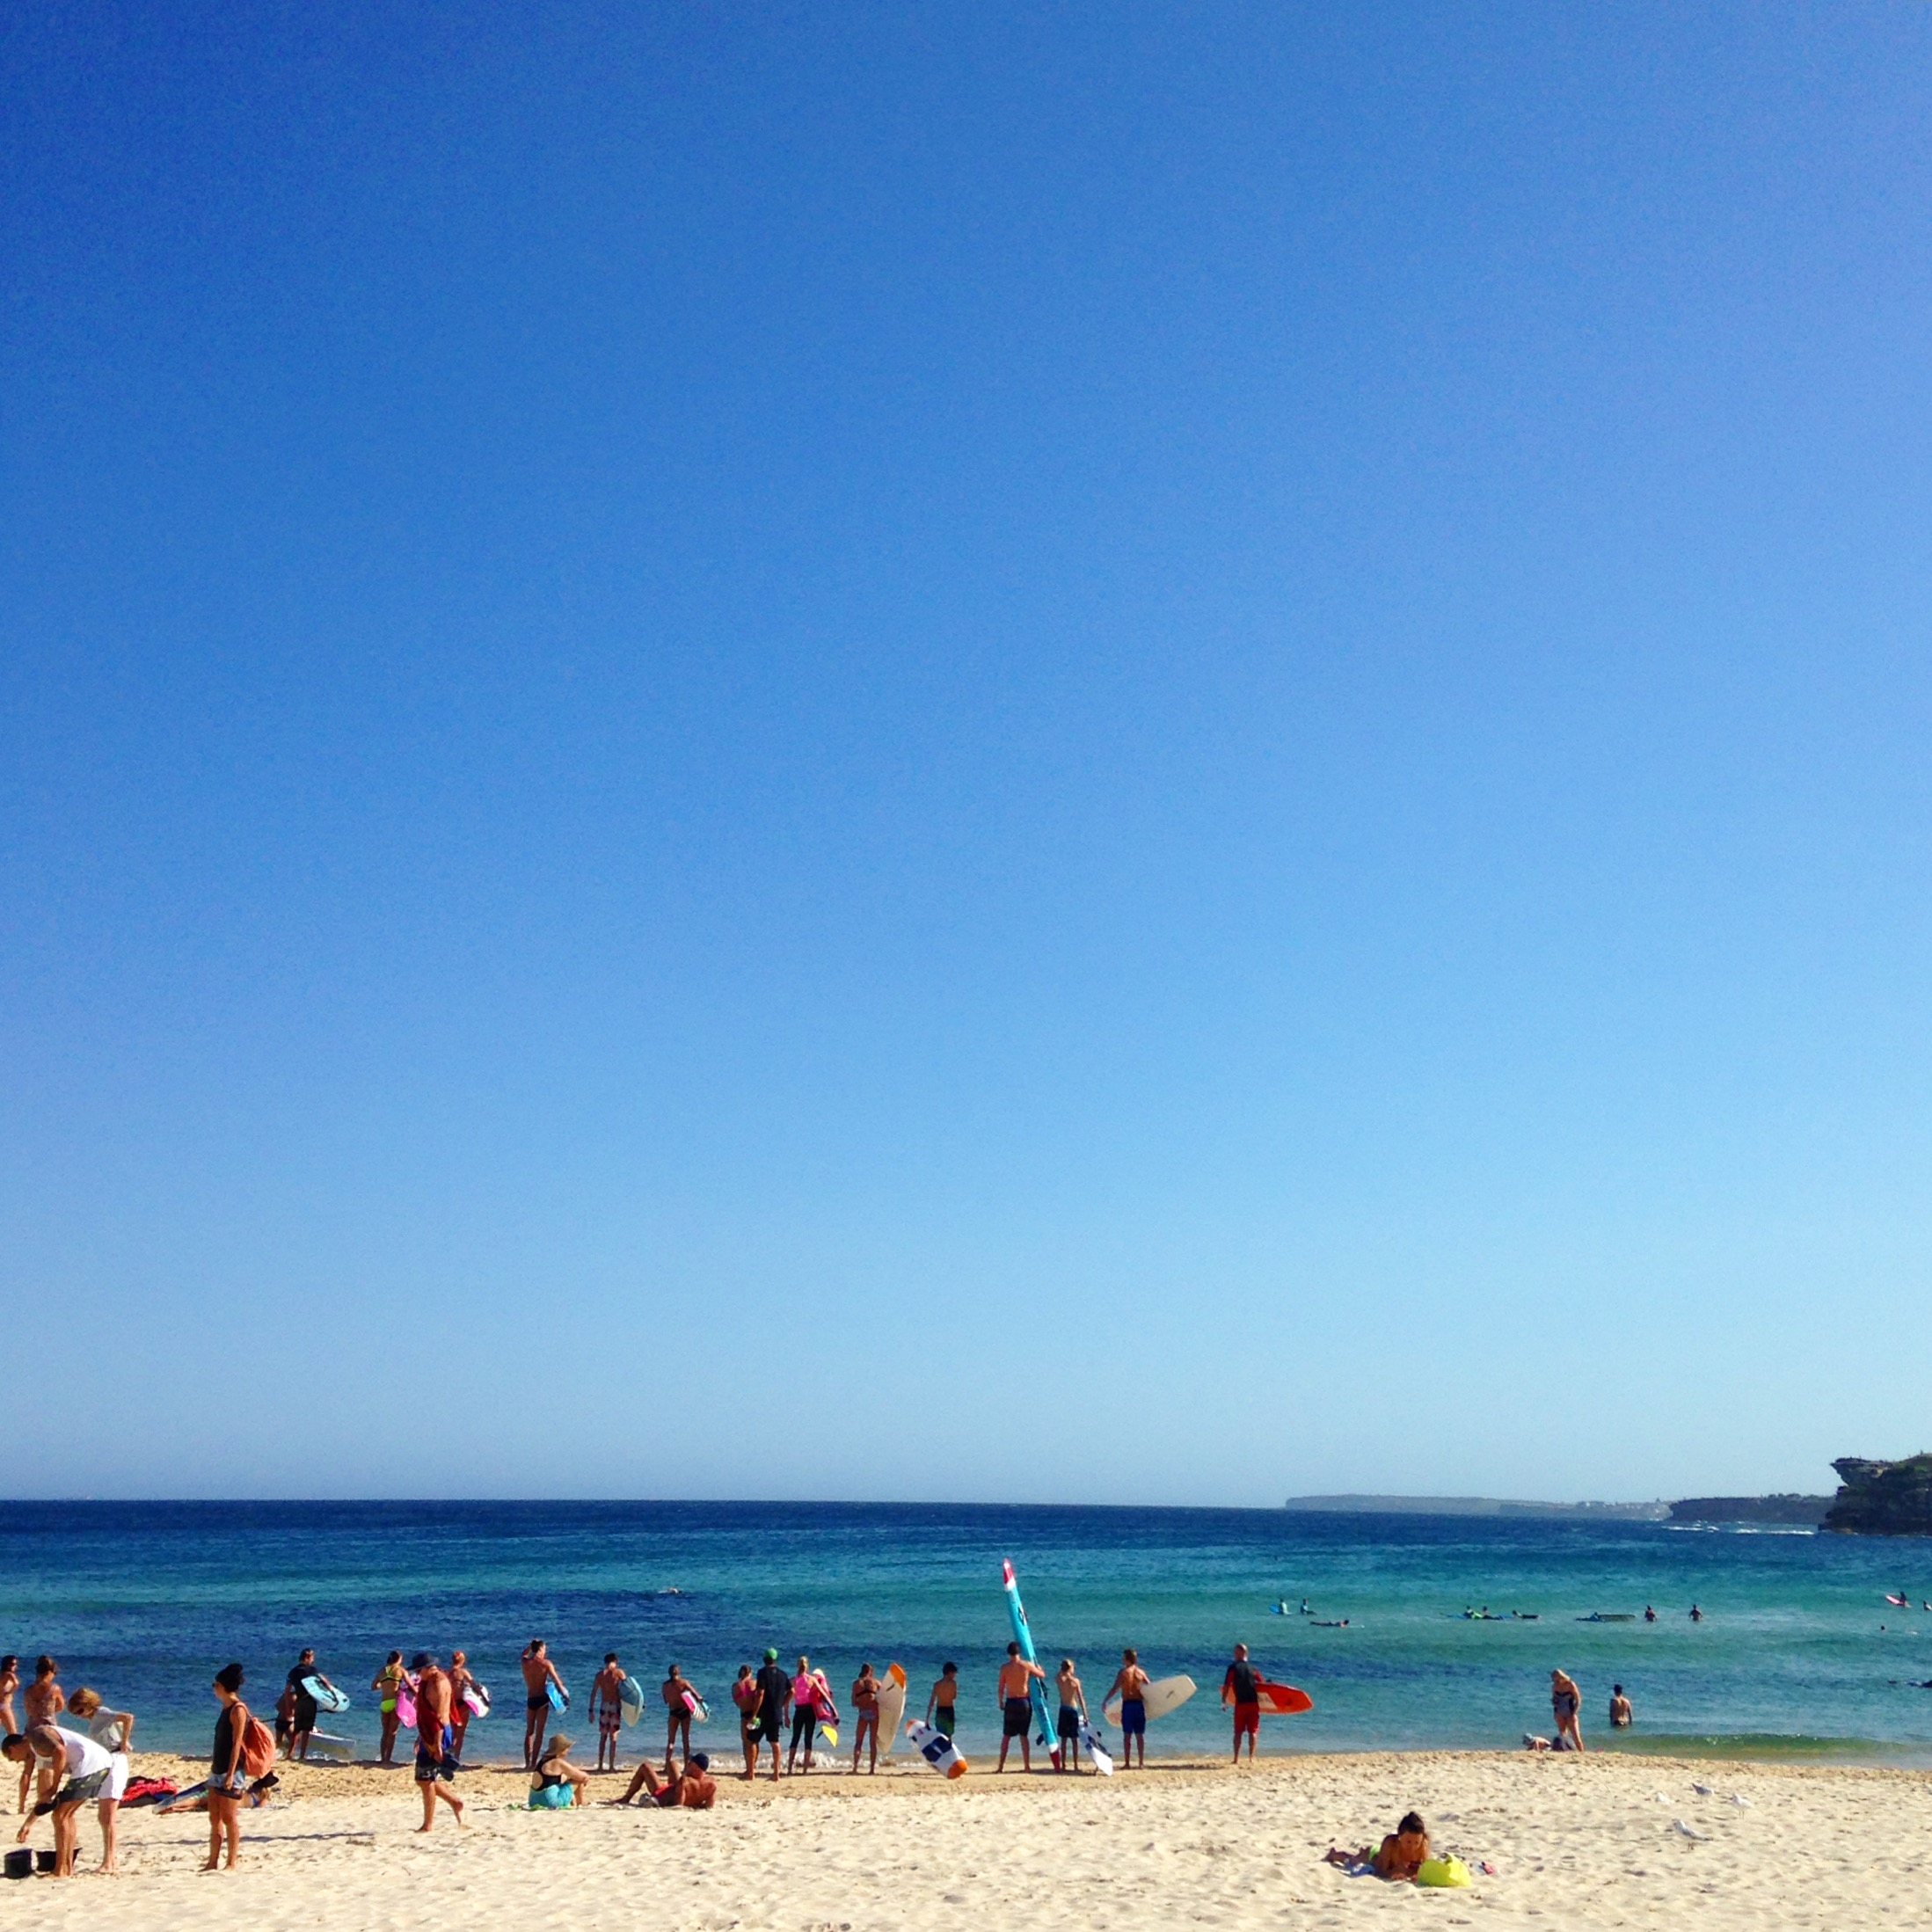 Blue skies and golden sands at Bondi Beach!